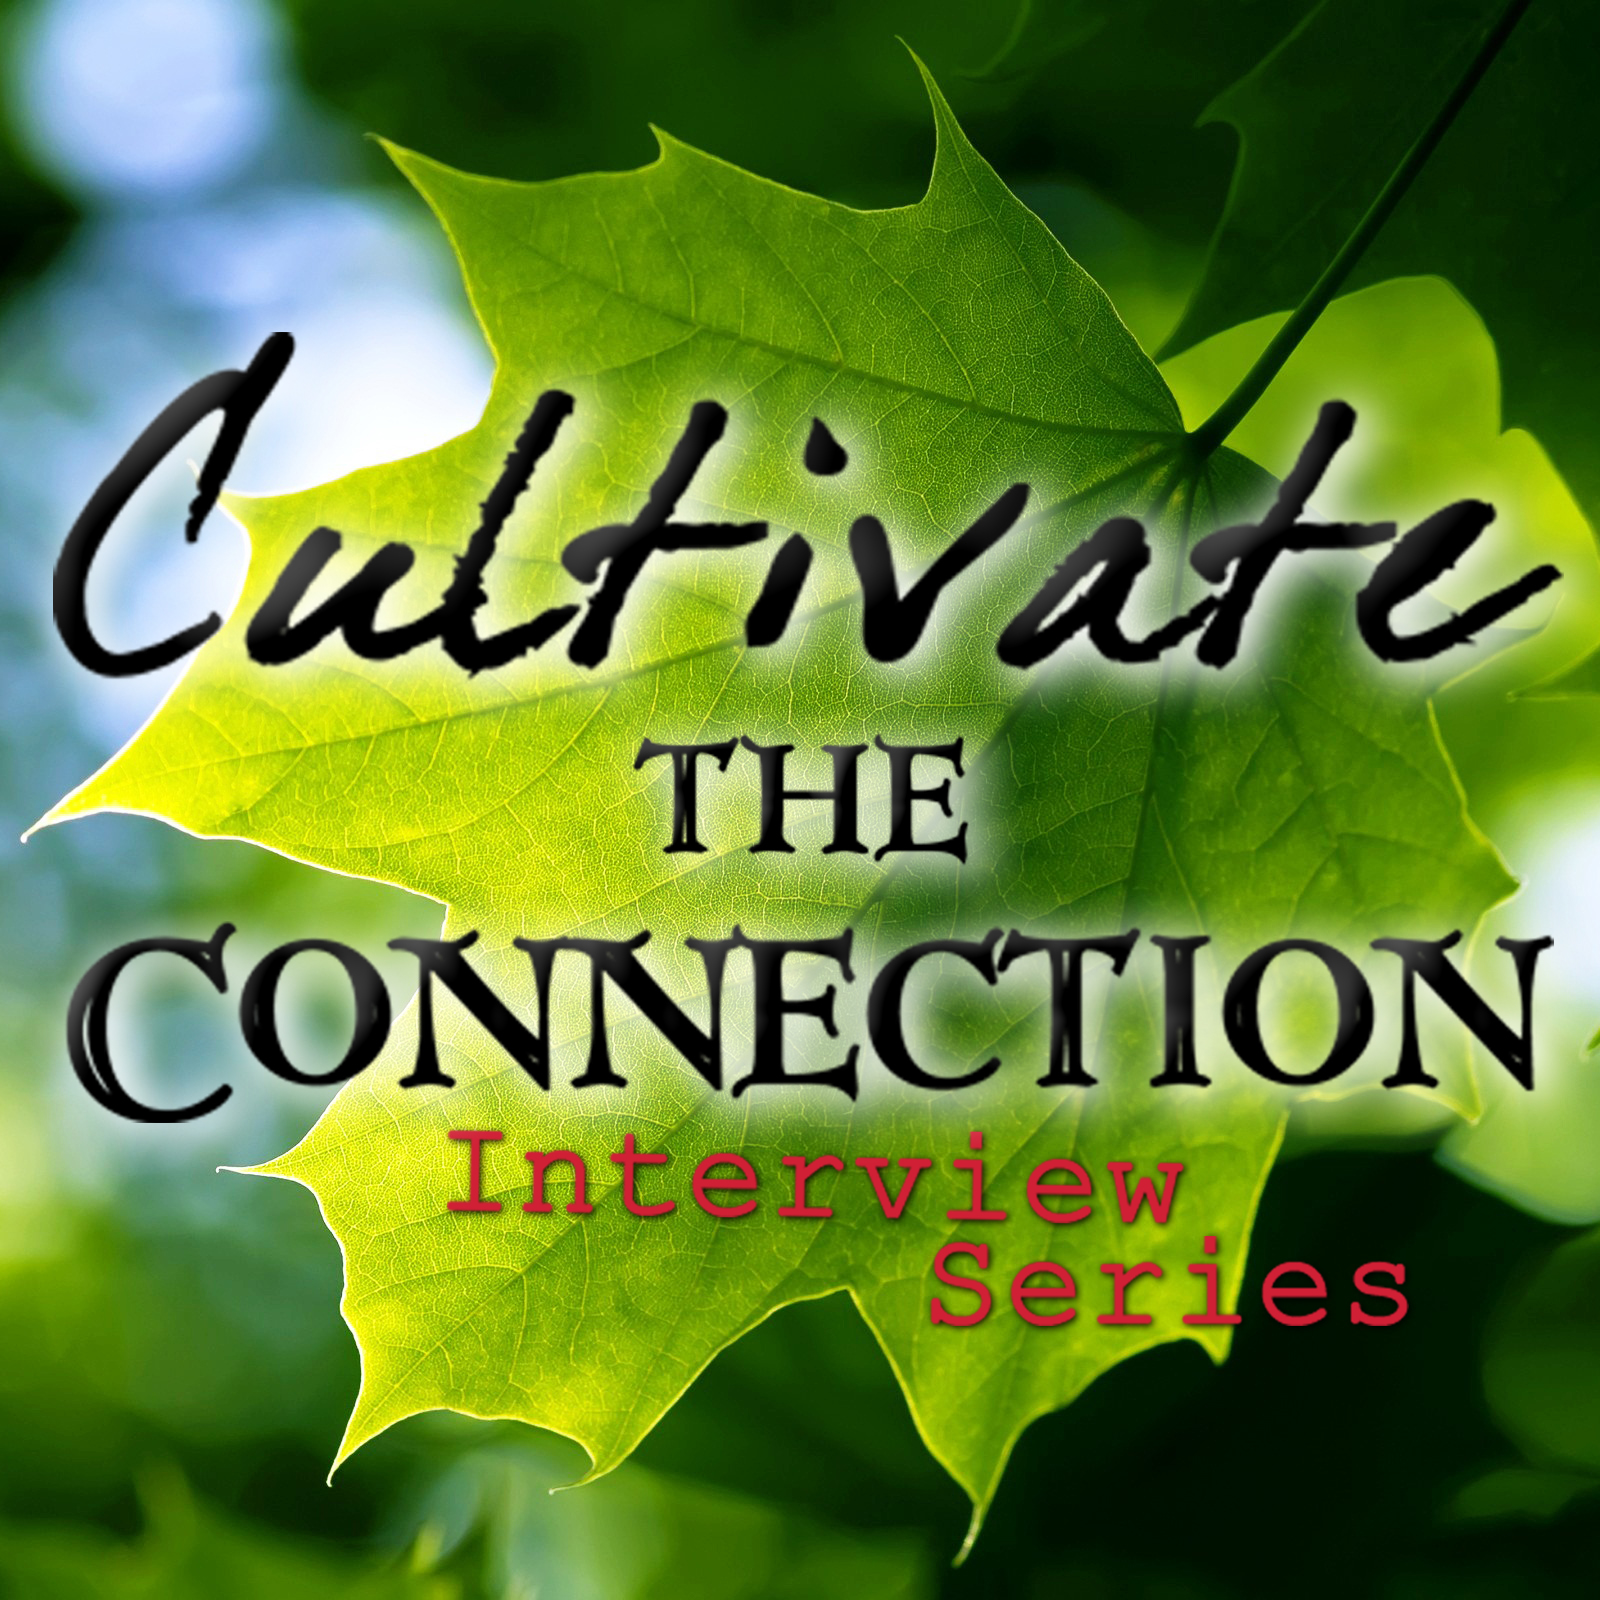 Cultivate the Connection